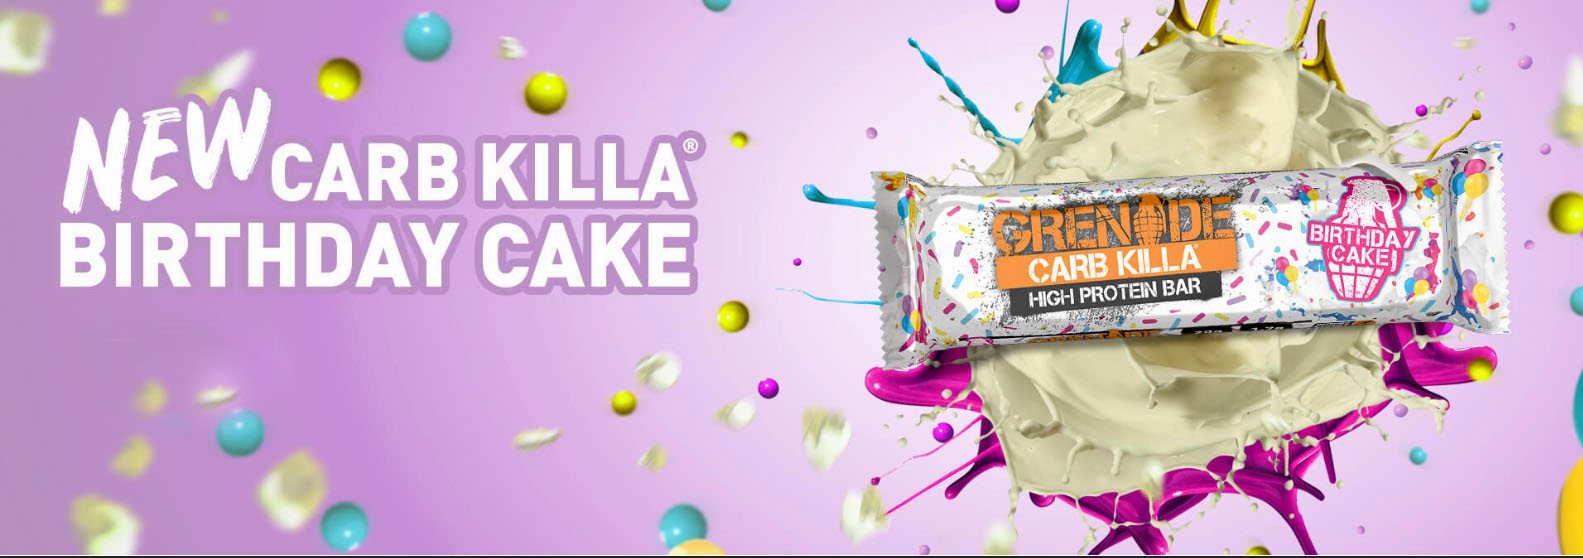 Grenade Carbkilla Birthday Cake